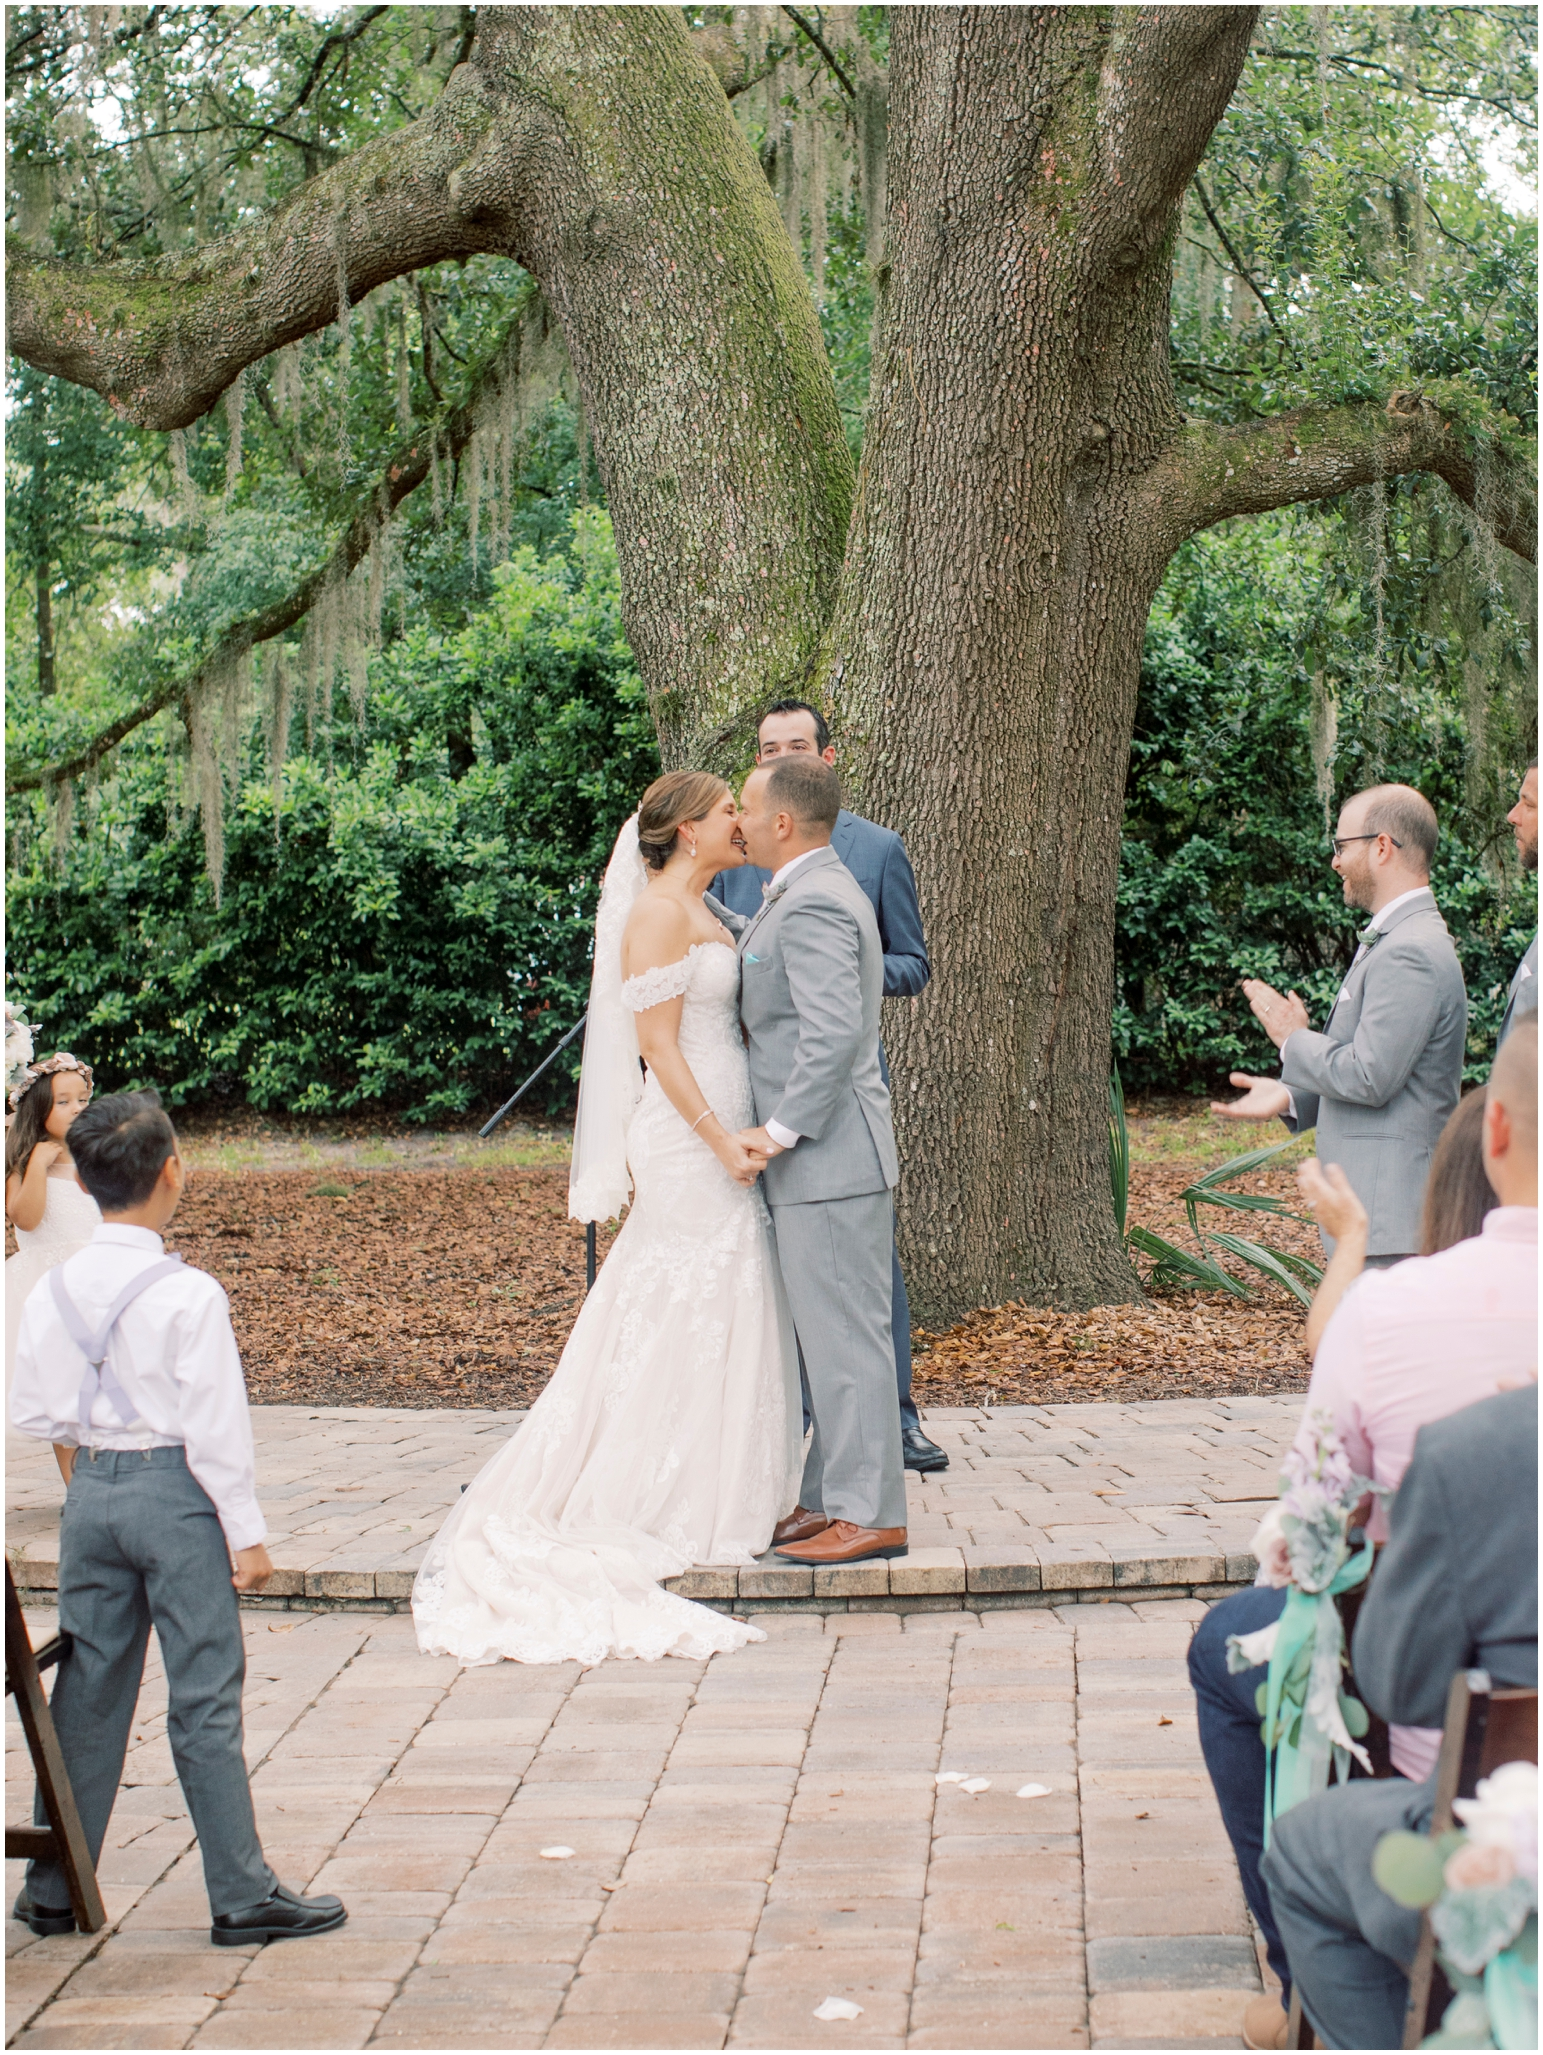 Lisa Silva Photography- Jacksonville, St Augustine, Fernandina Beach, Amelia Island, Ponte Vedra Beach, North East Florida Fine Art Film Photographer- Ashley and Shawn's wedding at bowing oaks plantation_0068.jpg